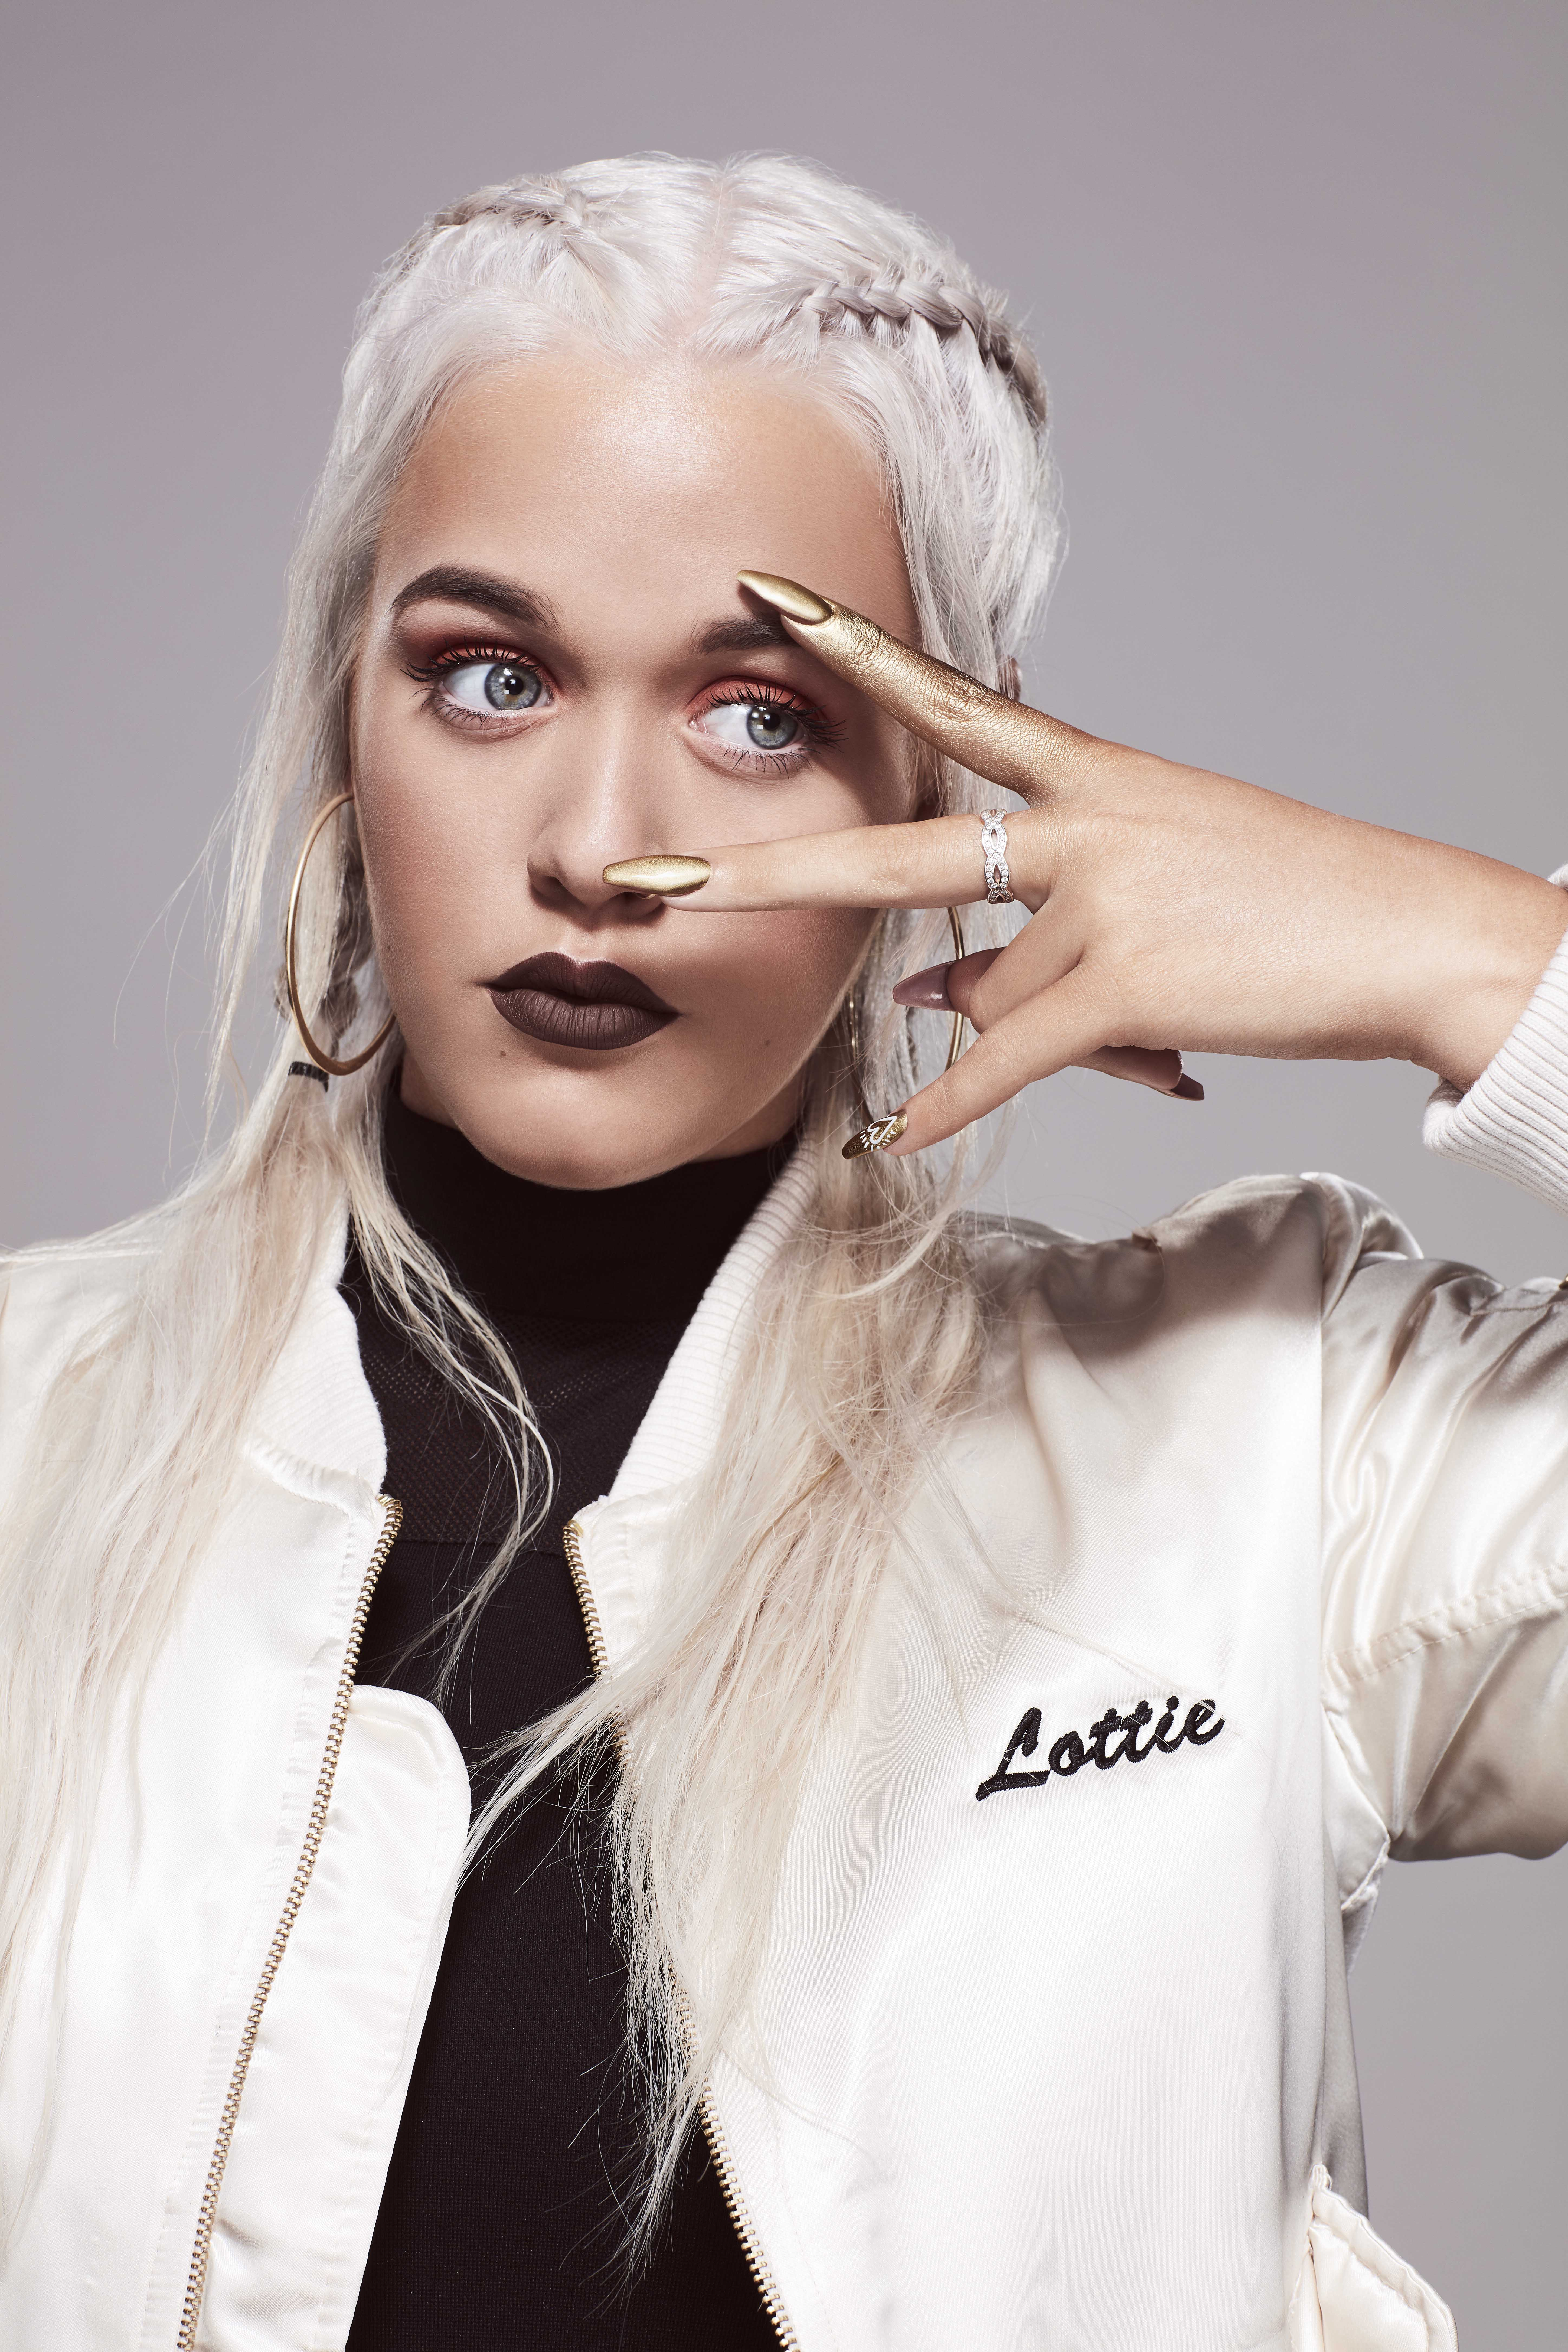 Lottie Tomlinson creates Good as Gold for Nails Inc.